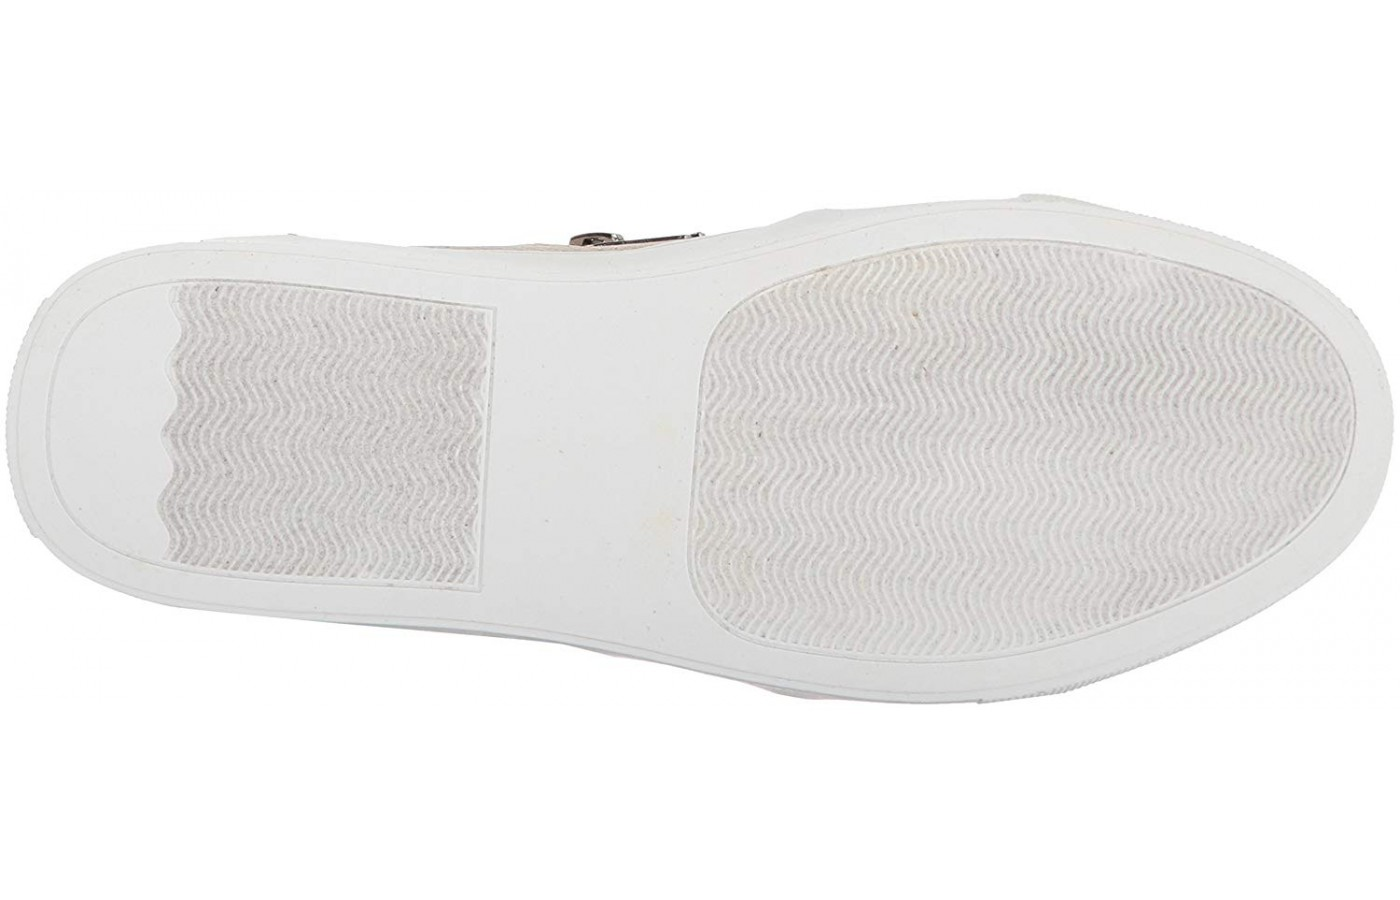 Light traction on flexible, durable soles make this easy to step out in.